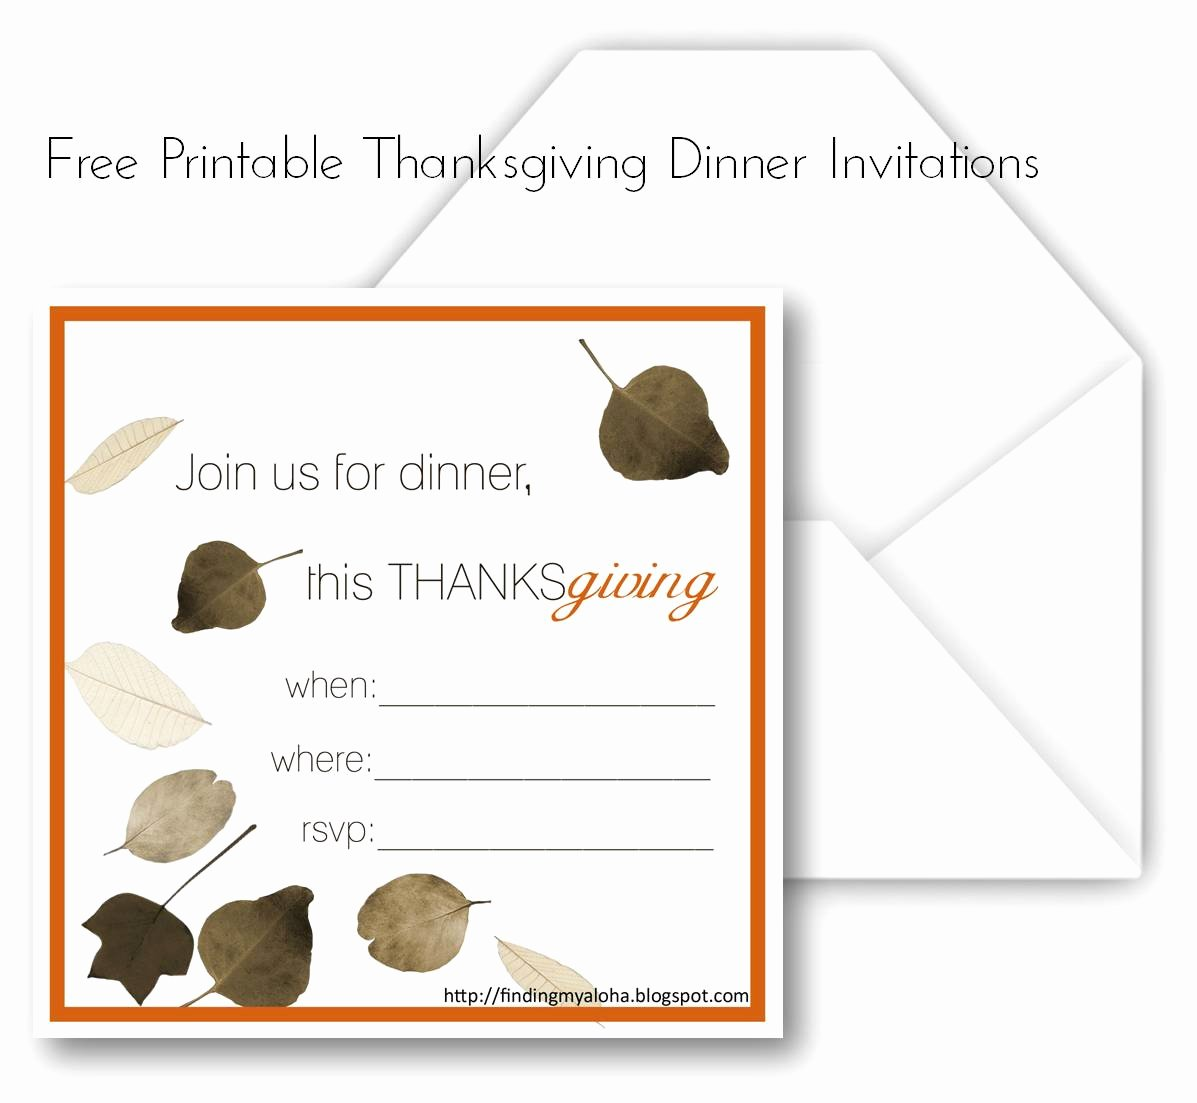 Dinner Invitation Template Free Printable Lovely Free Printable Thanksgiving Dinner Invitations